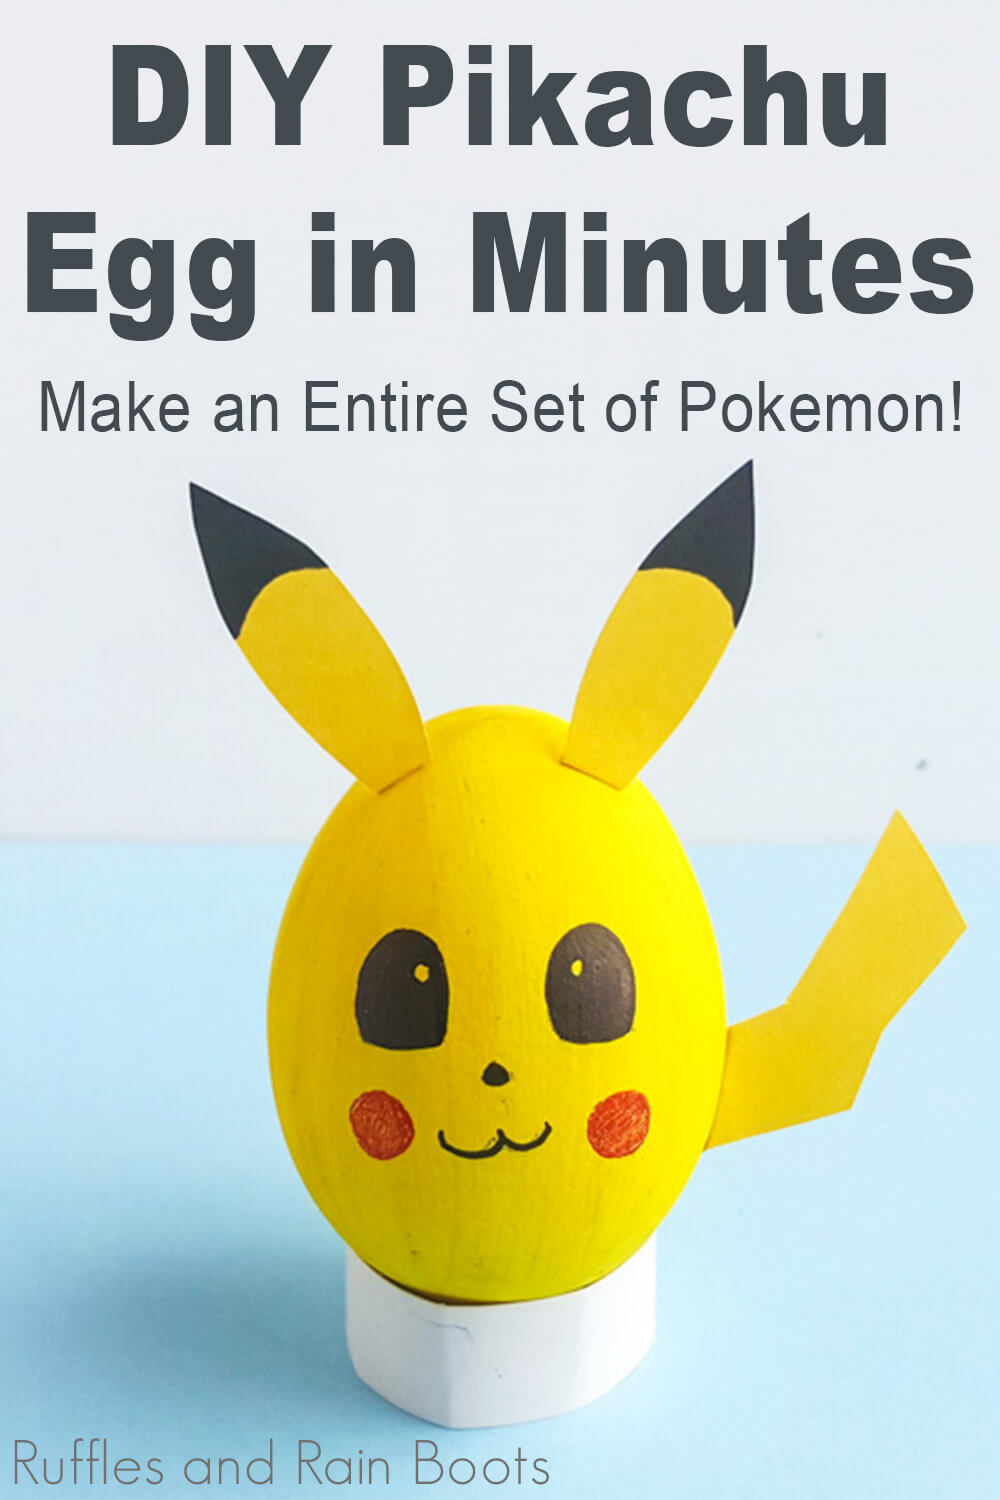 pikachu craft pokemon eggs for easter on a blue background with text which reads diy pikachu egg in minutes make an entire set of pokemon